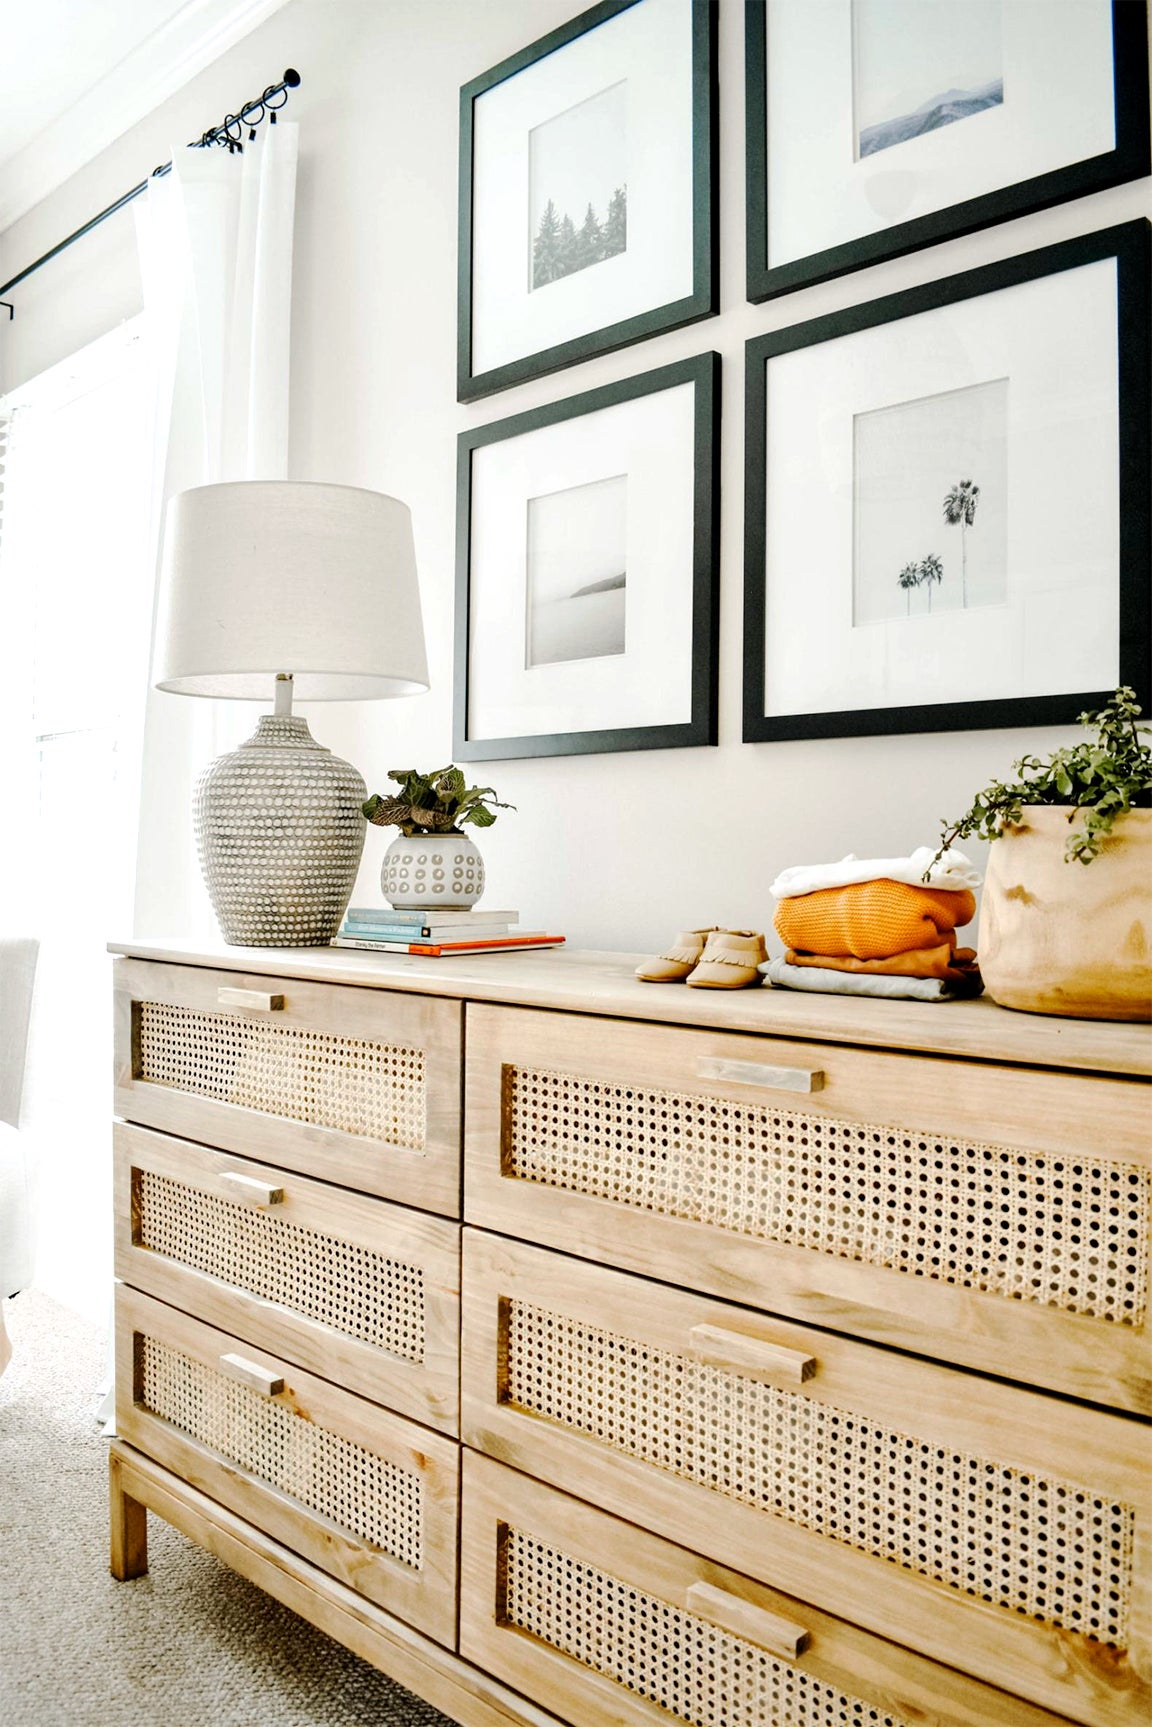 dresser drawers with cane